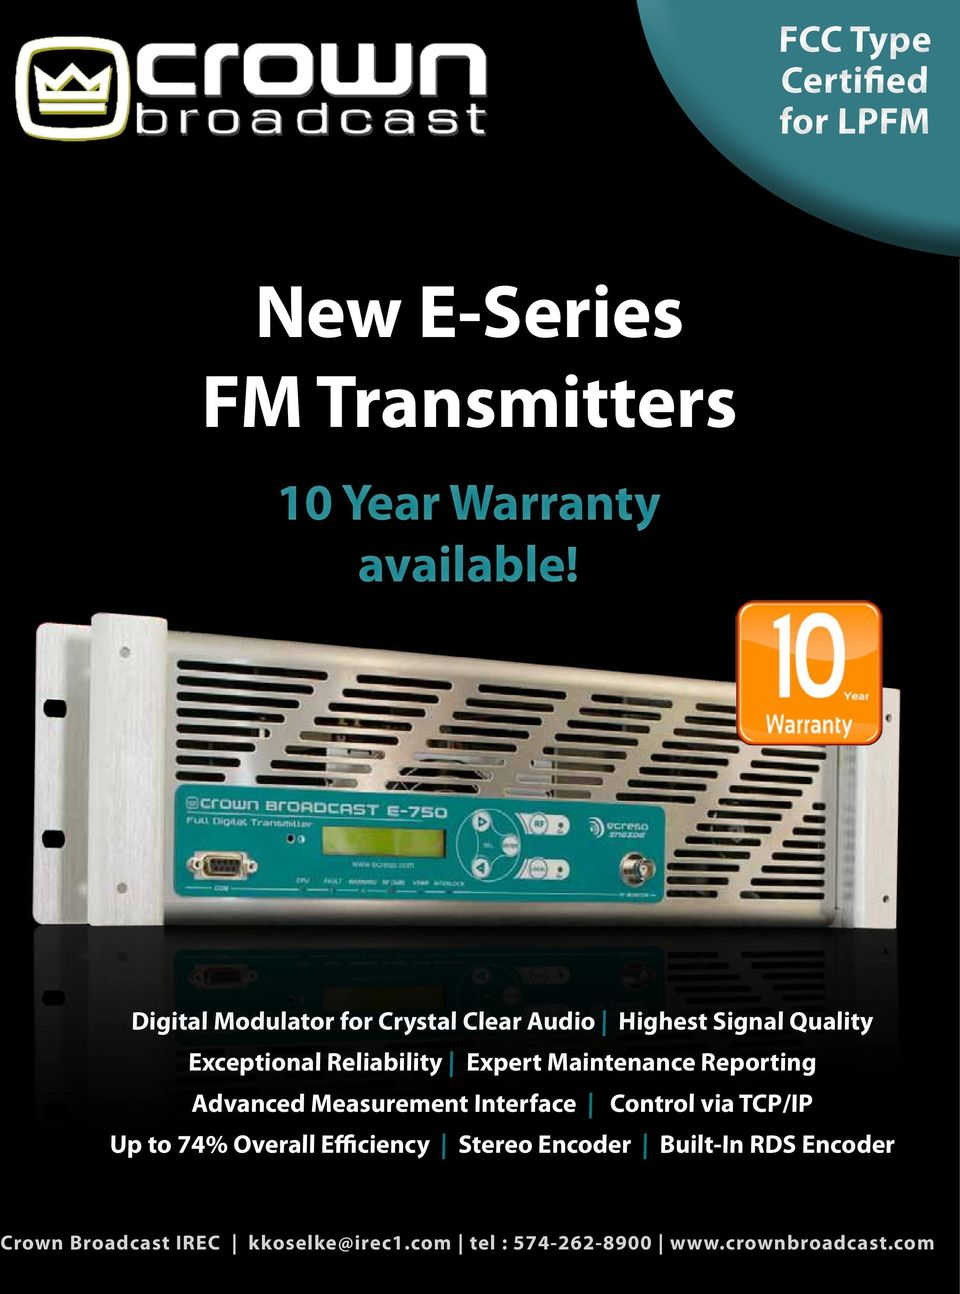 Stl Systems For Every Broadcaster Pdf Details About Fm Transmitter Circuit Board Kit Fcc Part 15 Certified Maintenance Reporting Advanced Measurement Interface Control Via Tcp Ip Up To 74 Overall